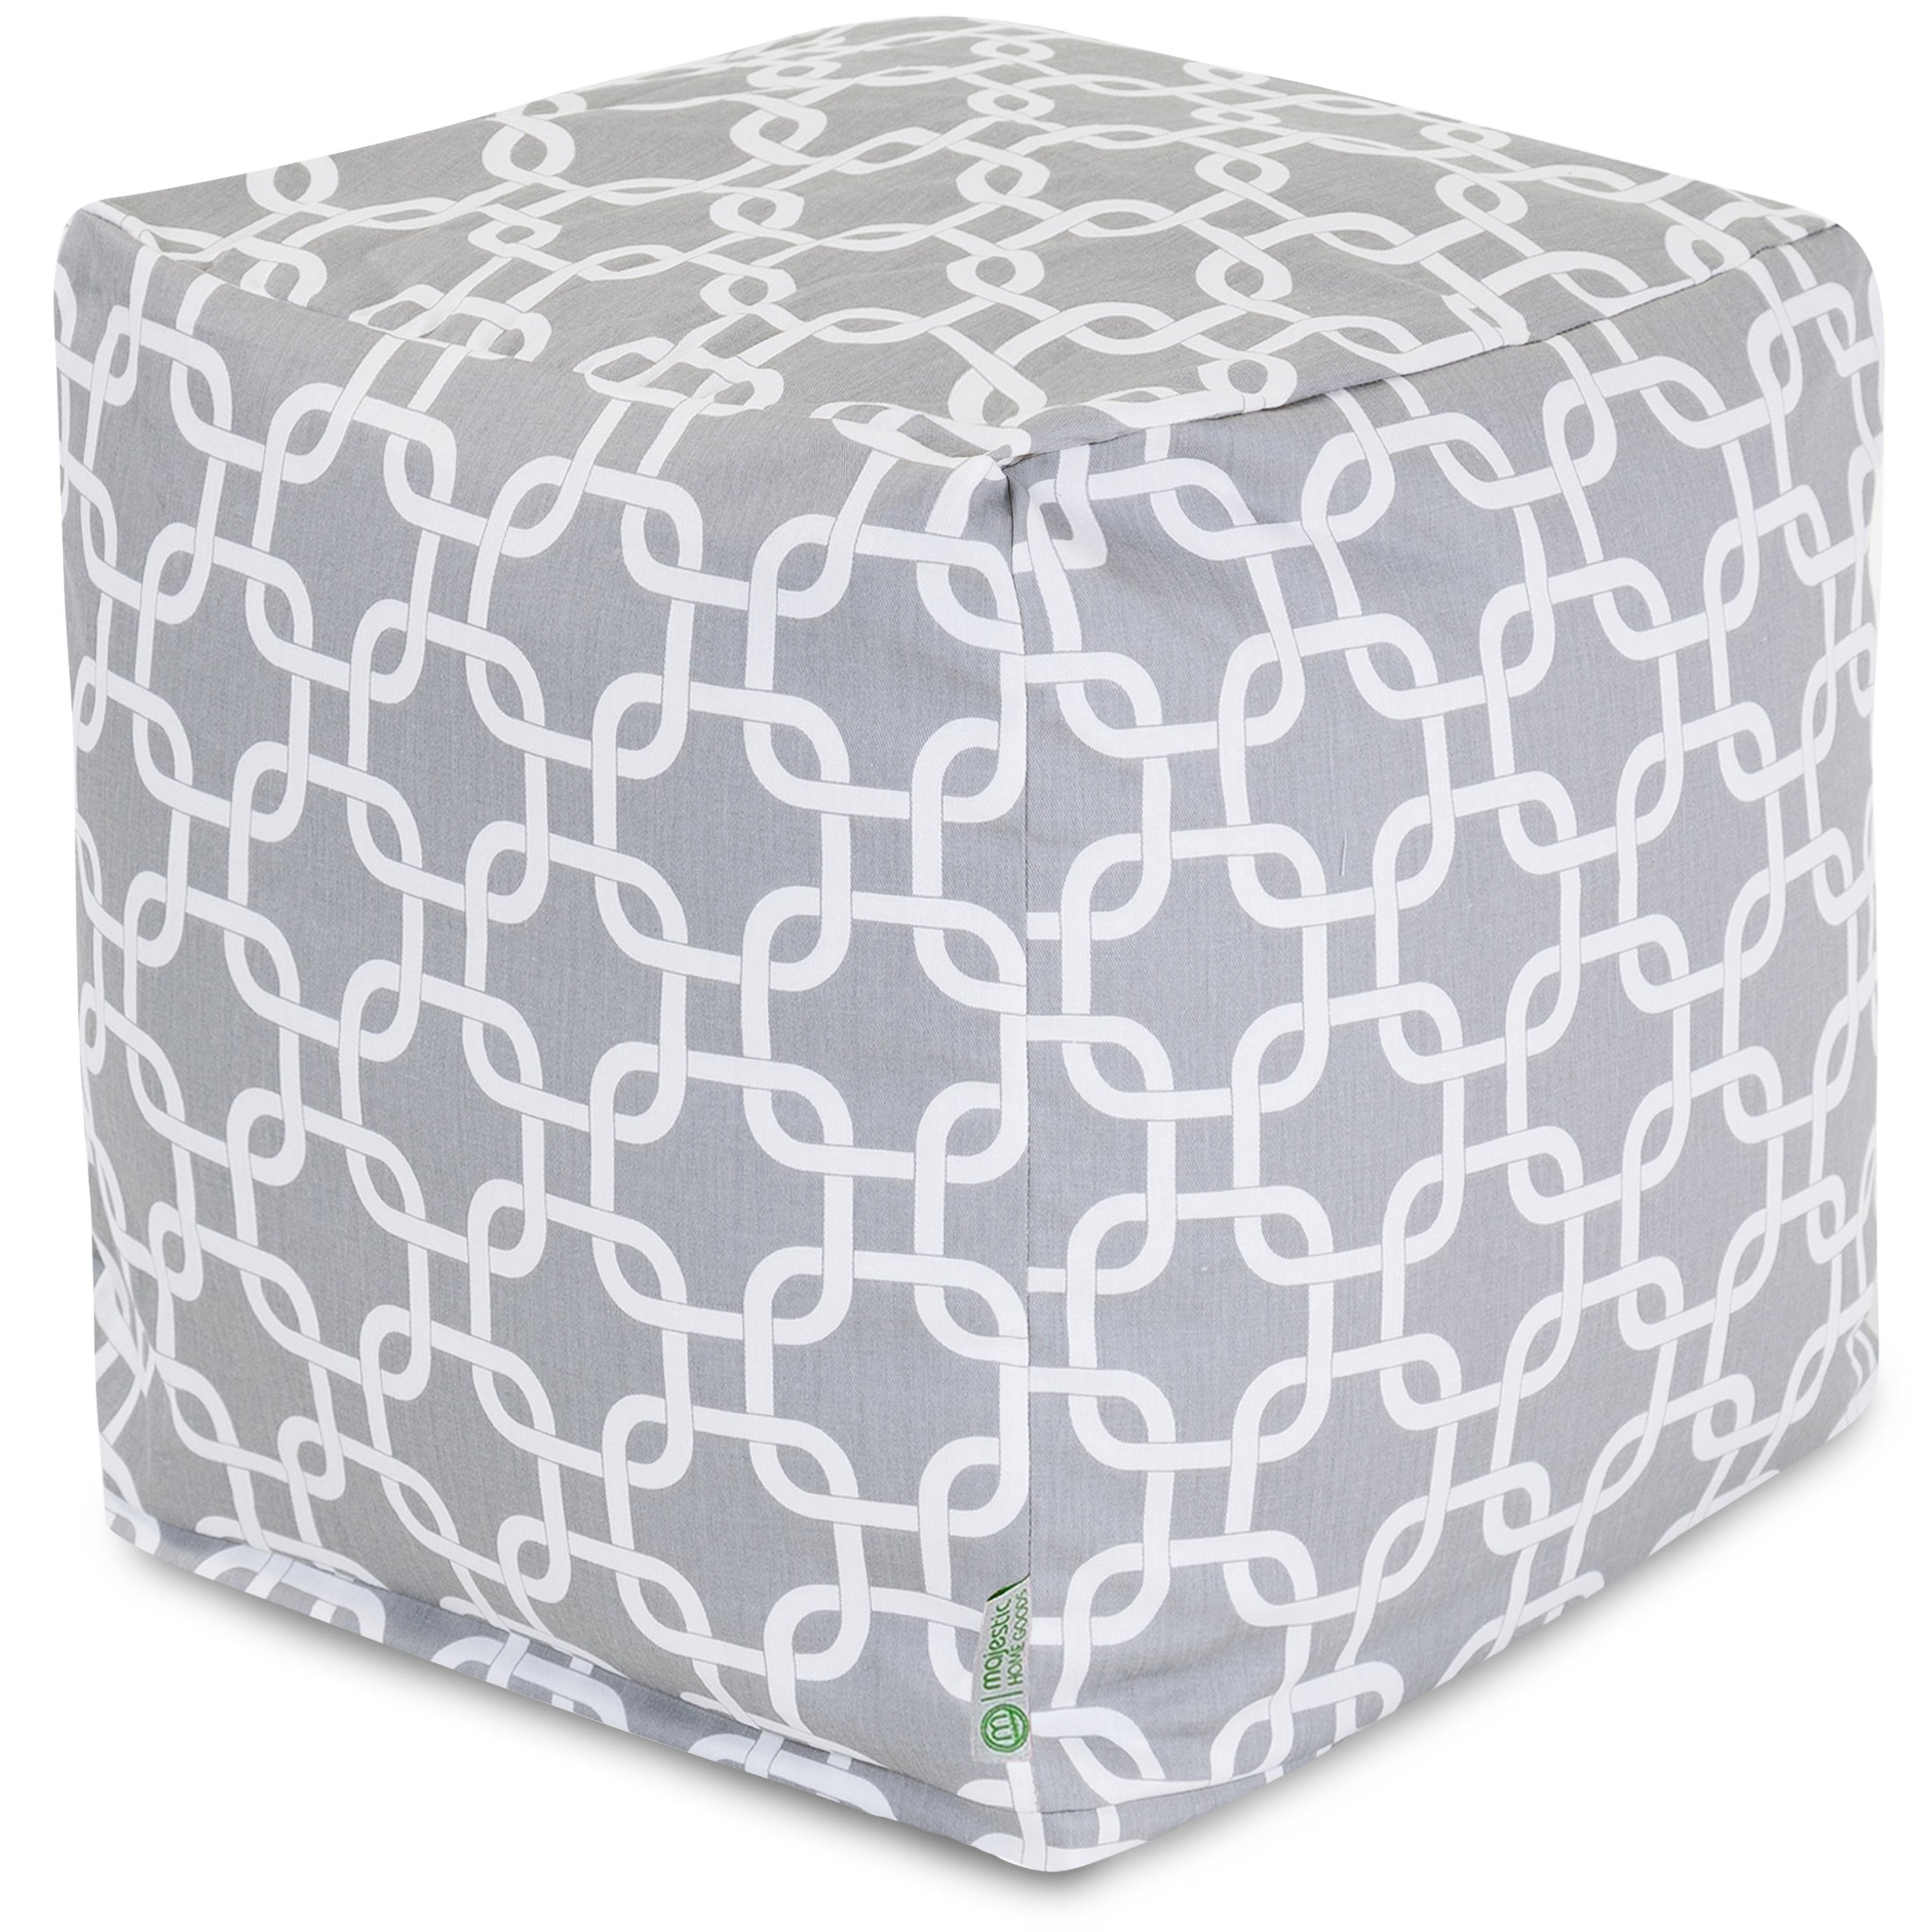 Majestic Home Goods Links Indoor/Outdoor Bean Bag Ottoman Pouf Cube, 17'' x 17'' x 17'' (Gray)